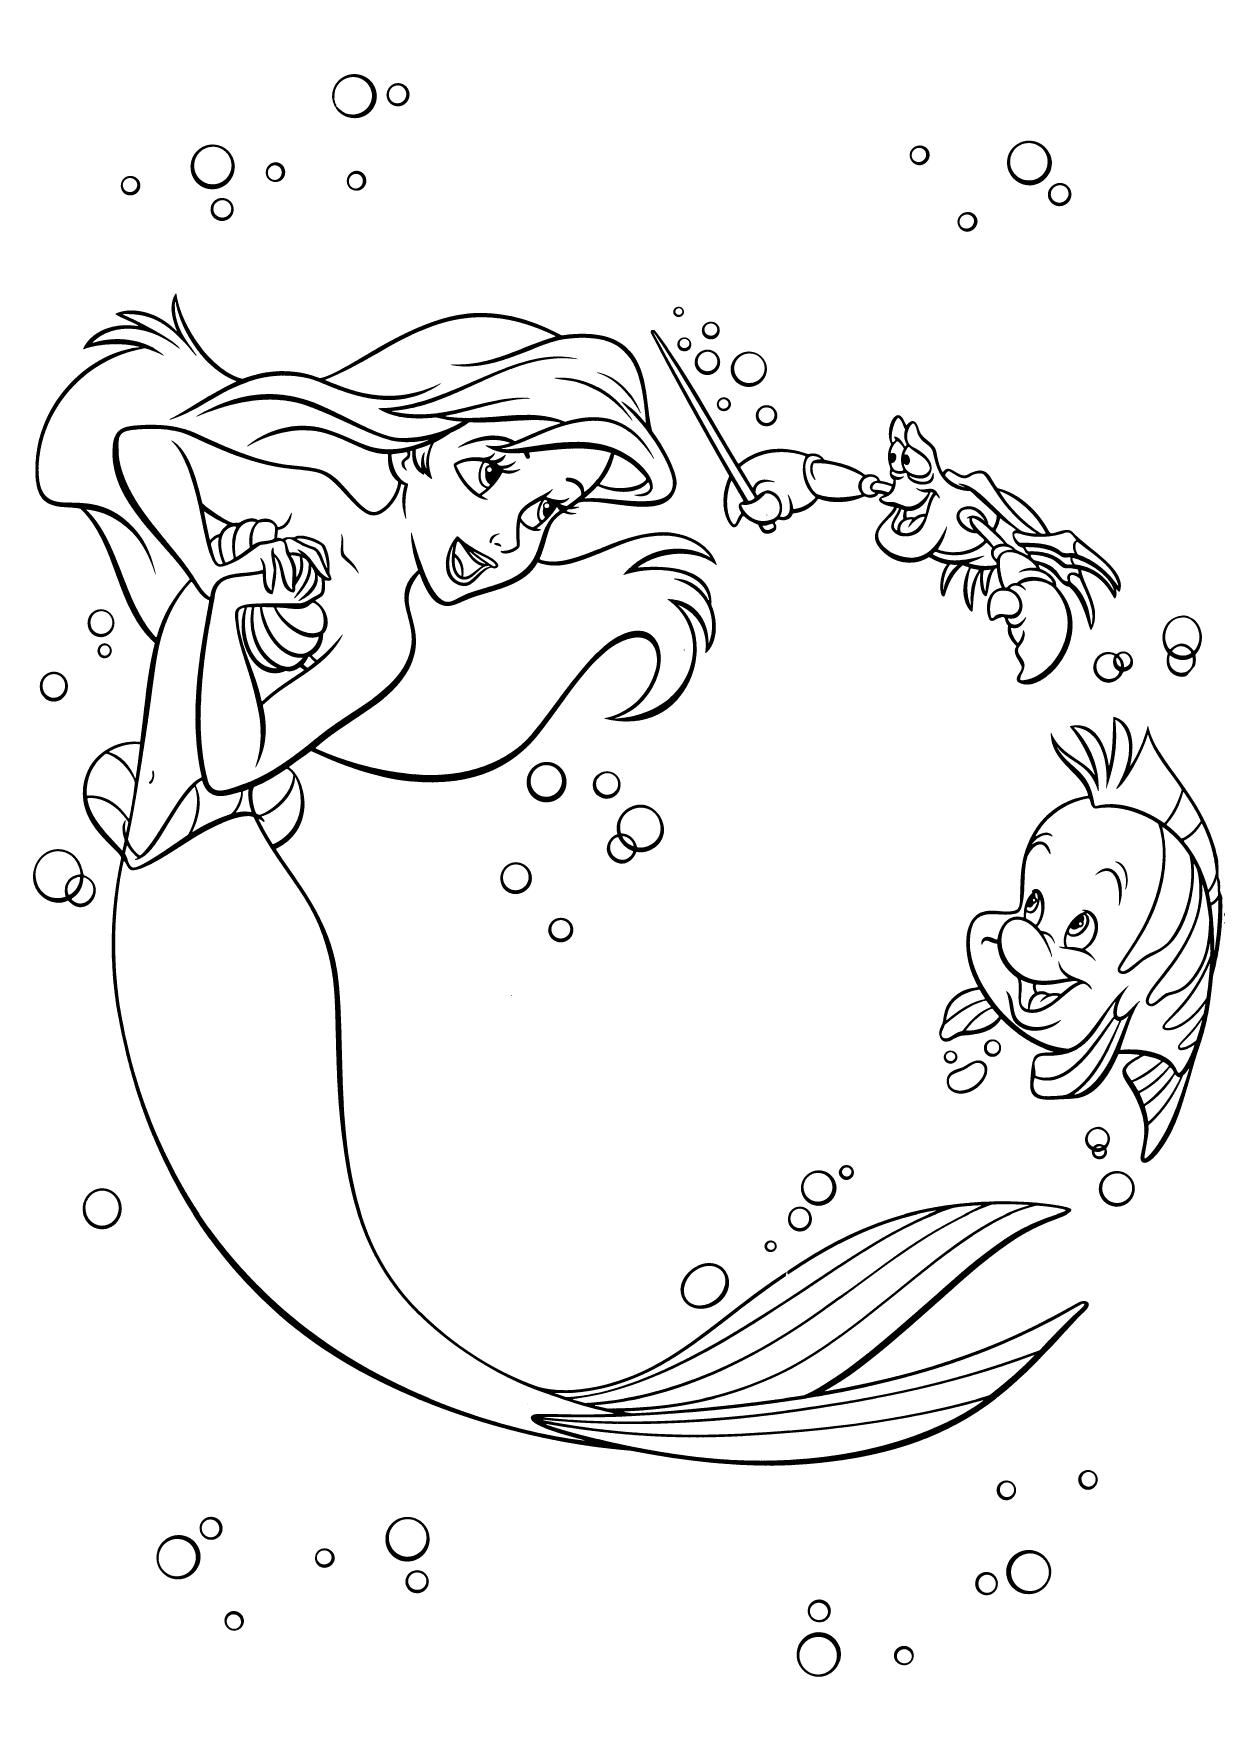 Disney Coloring Book Pdf Free Online Printable Pages Sheets For Kids Get The Latest Images Favorite